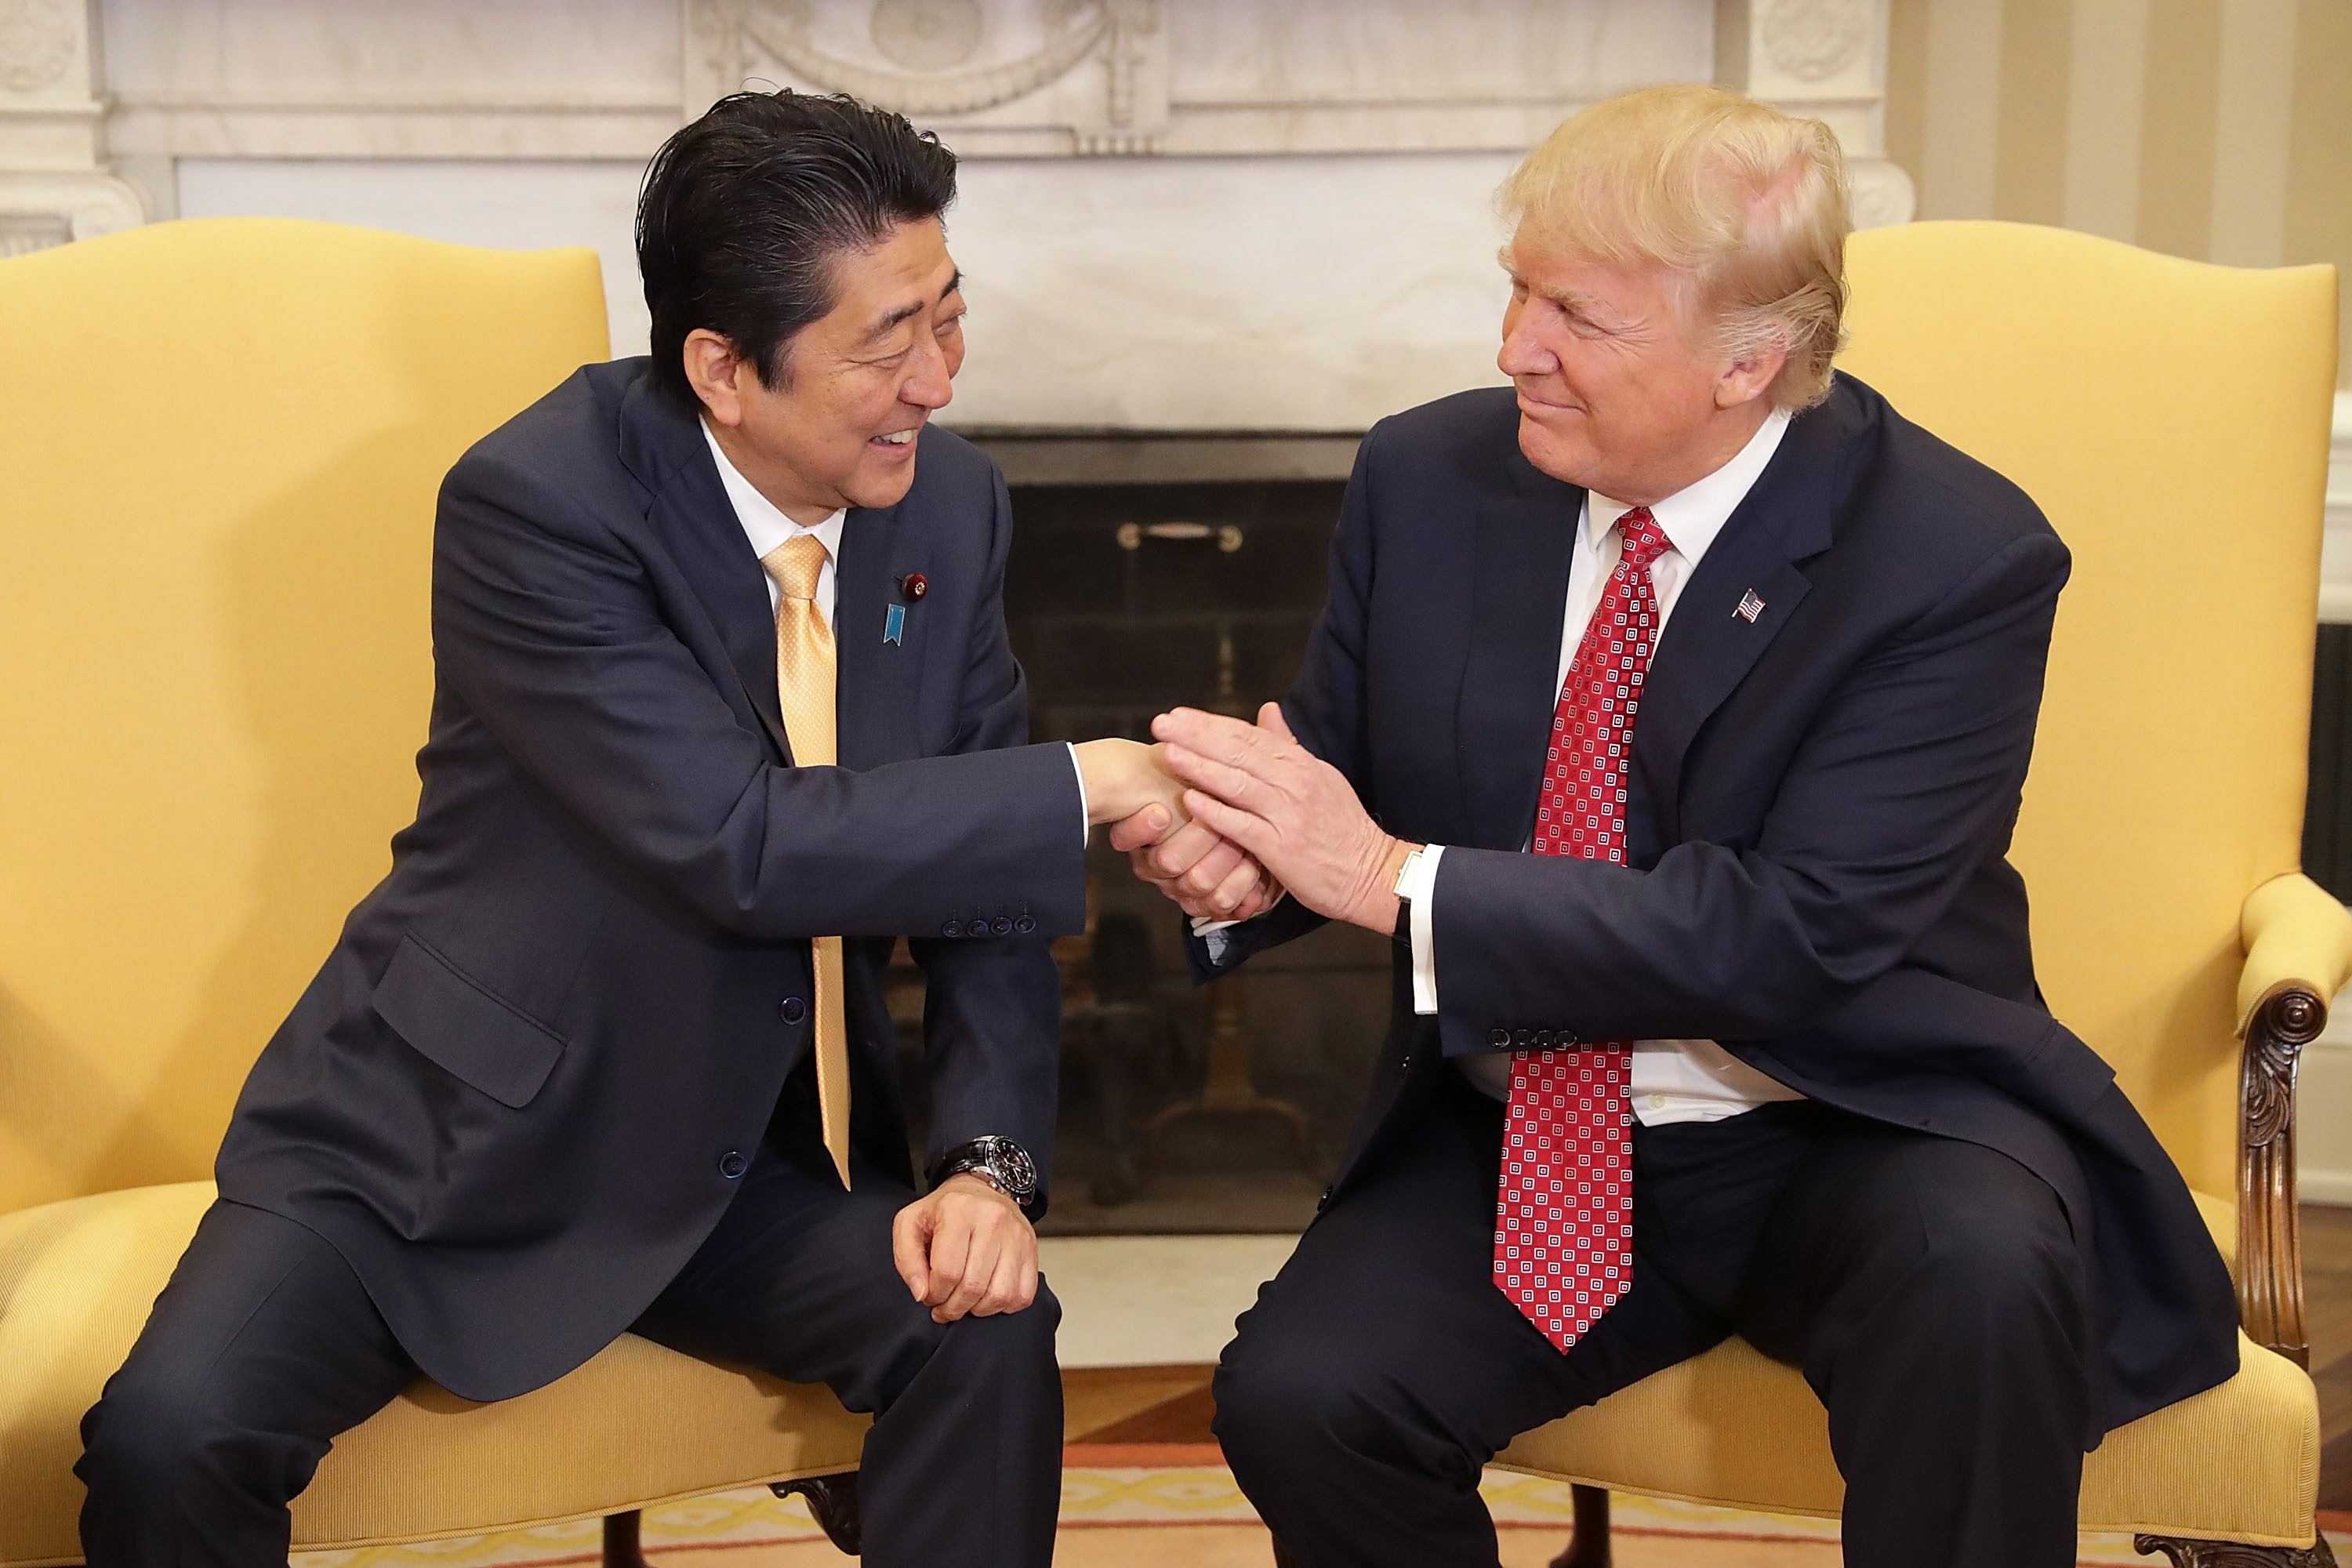 Trump Shakes Japanese Pms Hand For 19 Seconds Cnn Video